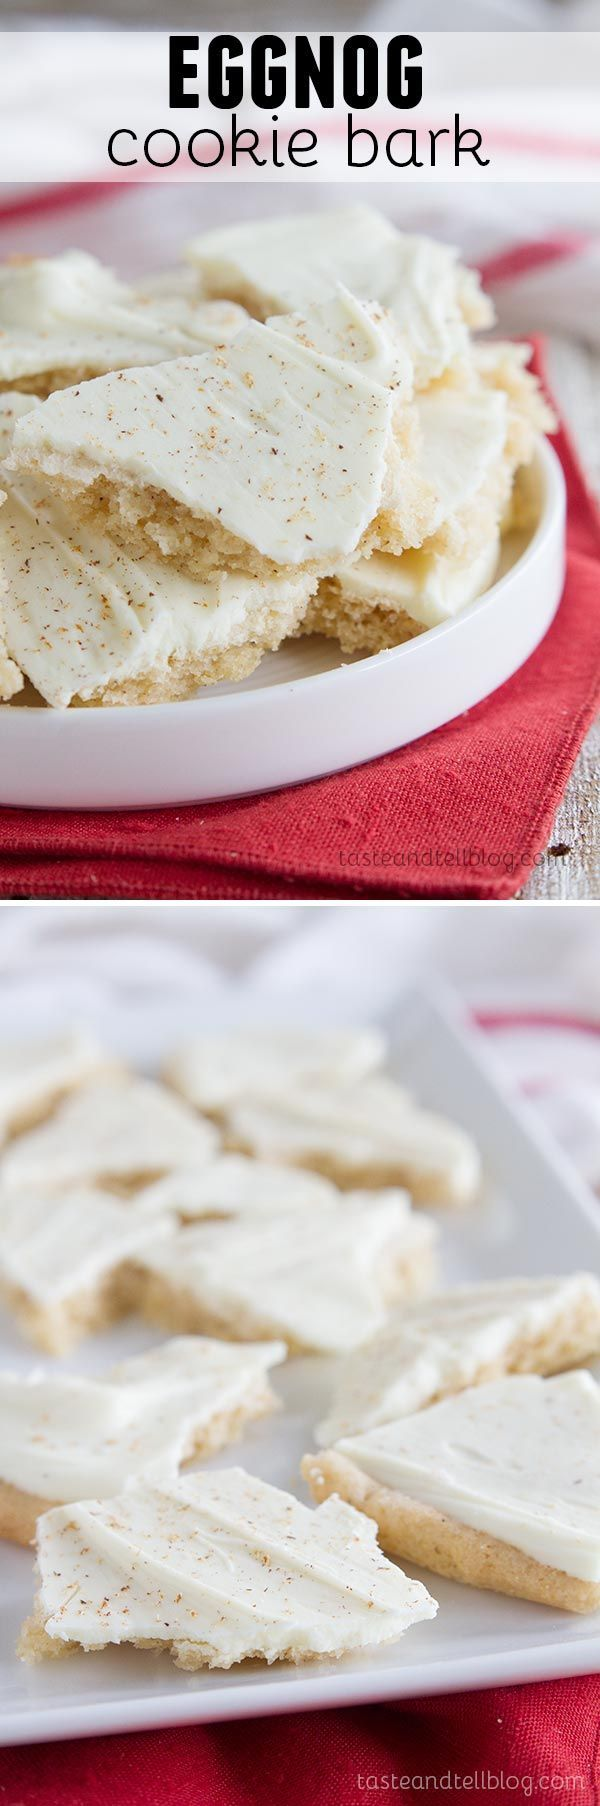 Eggnog Cookie Bark - This festive holiday recipe for Eggnog Cookie Bark is great for holiday gift giving or holiday parties.  It is a fun way to eat a cookie!